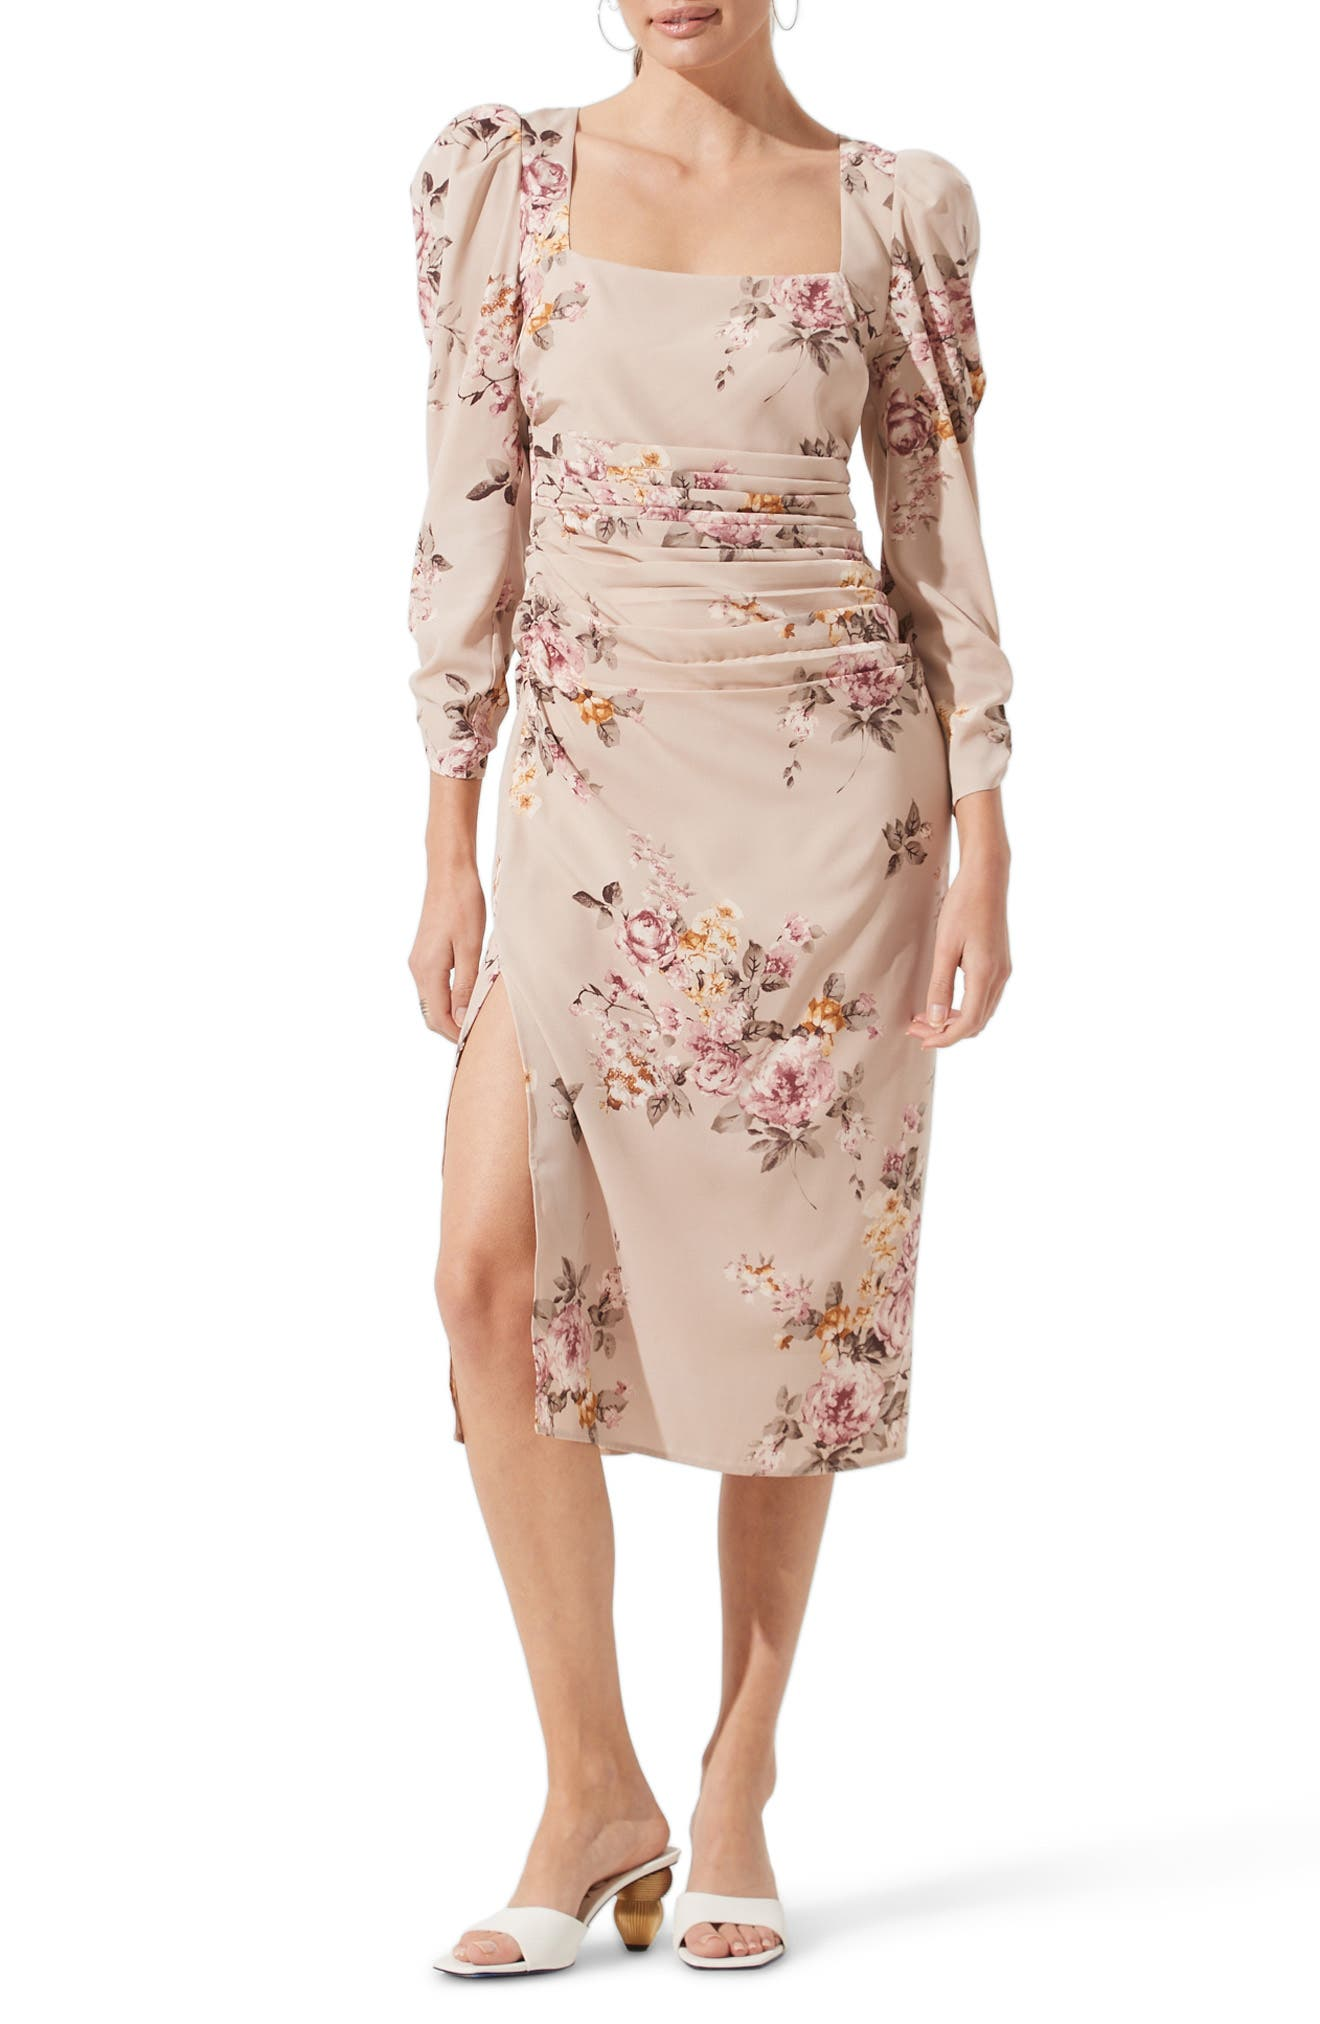 Embroidered Dress Knee Length S-M-L-XL-2X-3X Women Nature-inspired Bliss Clothing Cotton Sleeveless Patchwork Shift Taank Scoop Neck Dress